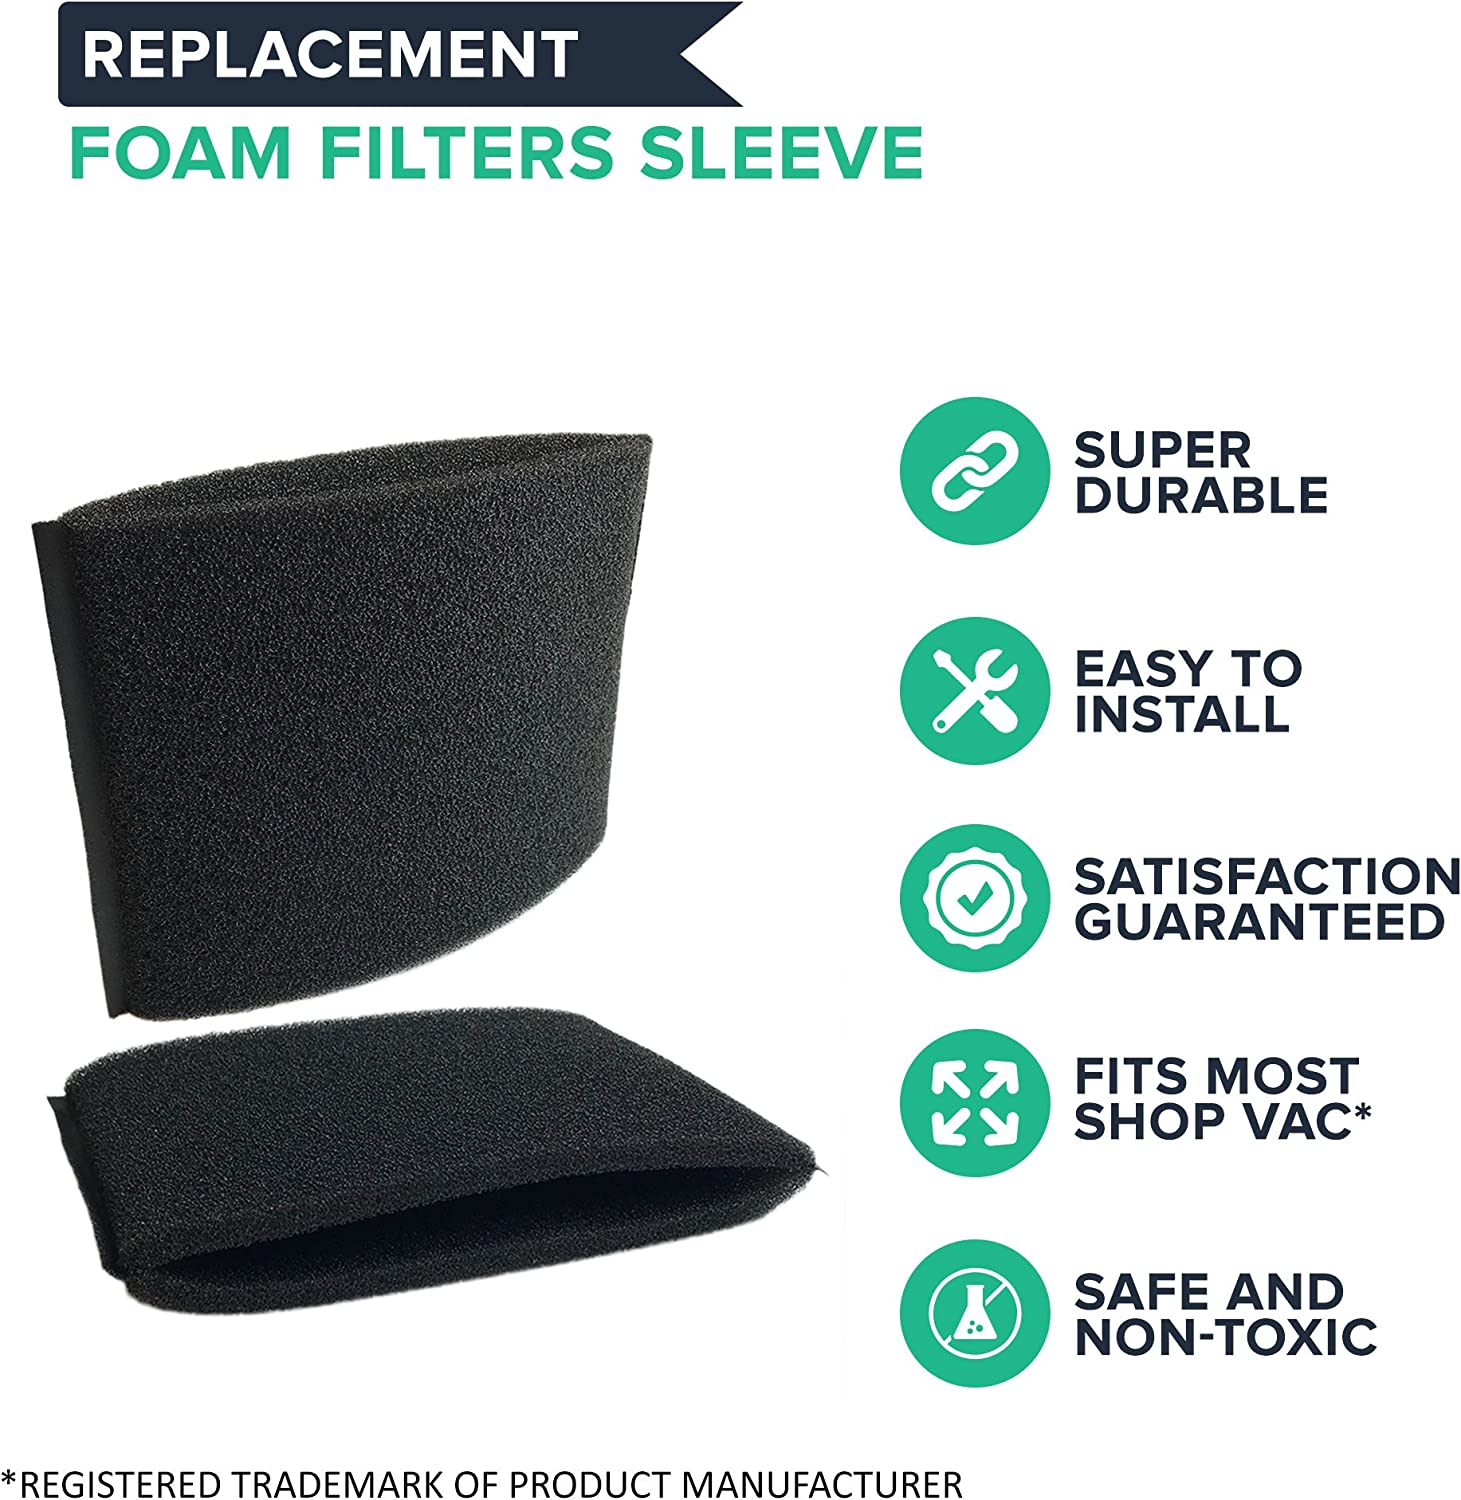 Shop-Vac Foam Filter Sleeve Designed to Fit Most Shop-Vac Wet//Dry Vacuums